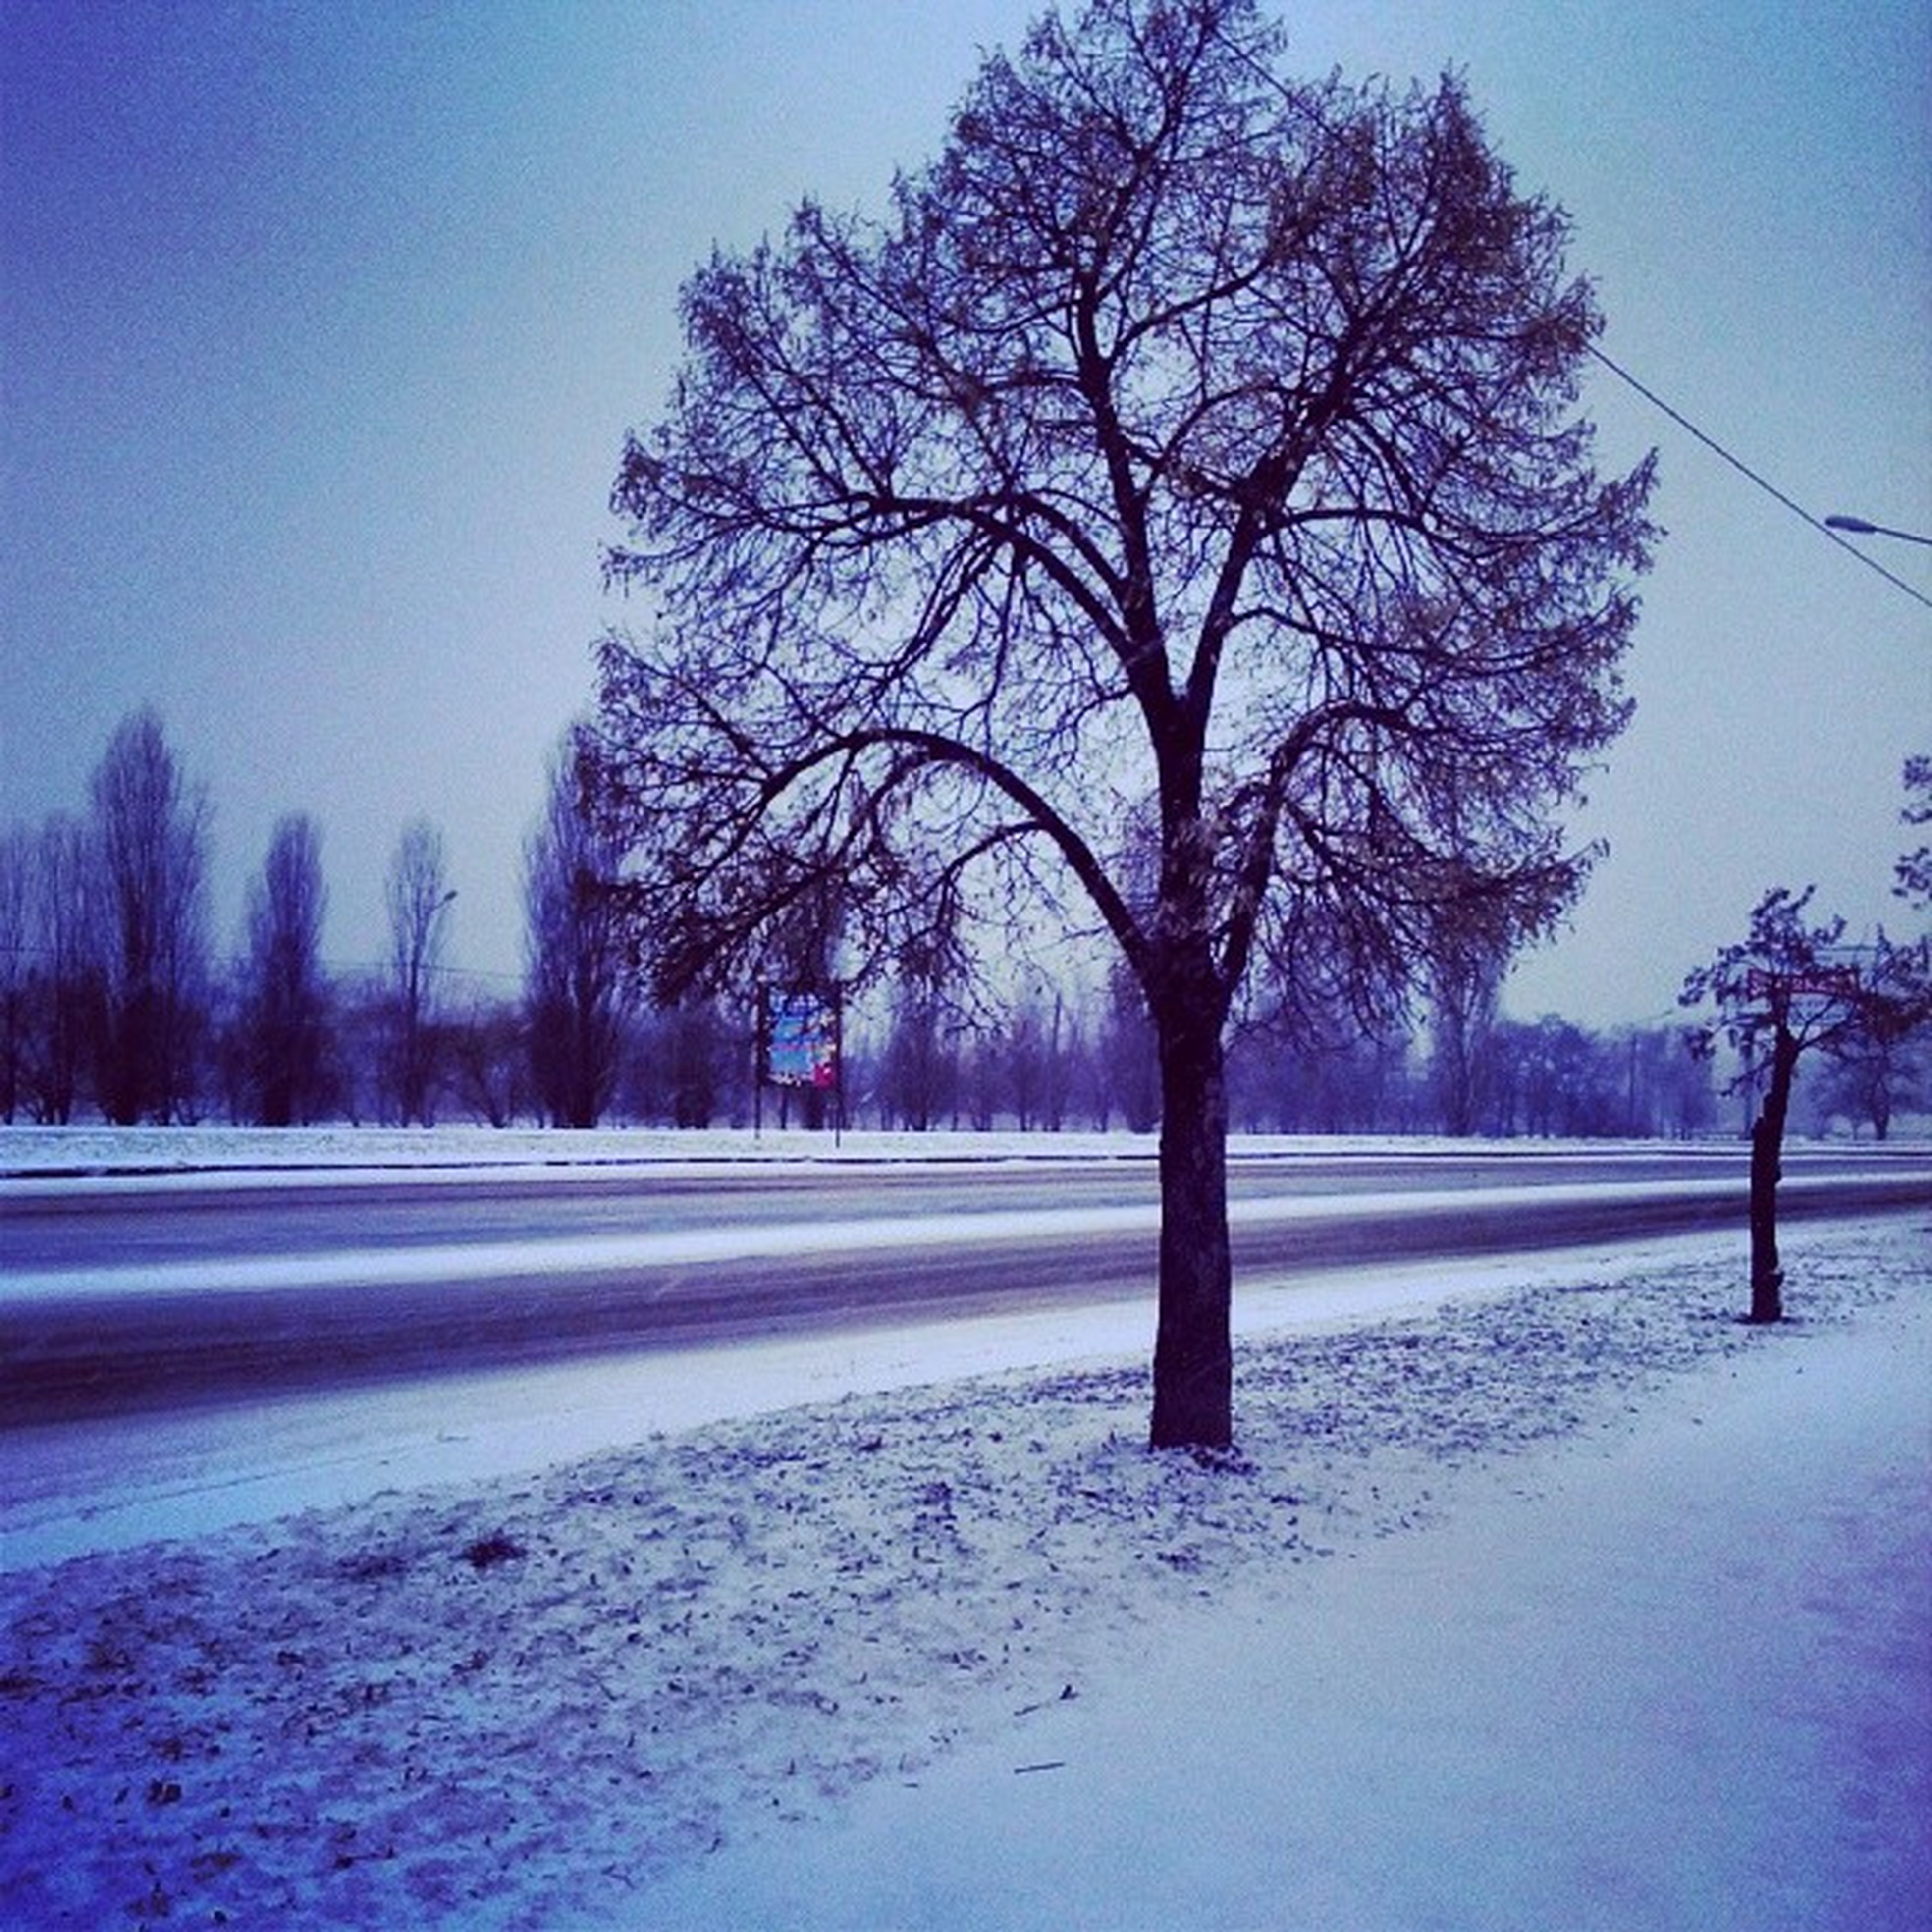 snow, winter, cold temperature, tree, bare tree, season, road, weather, tranquility, tranquil scene, nature, landscape, clear sky, the way forward, beauty in nature, scenics, field, covering, sky, street